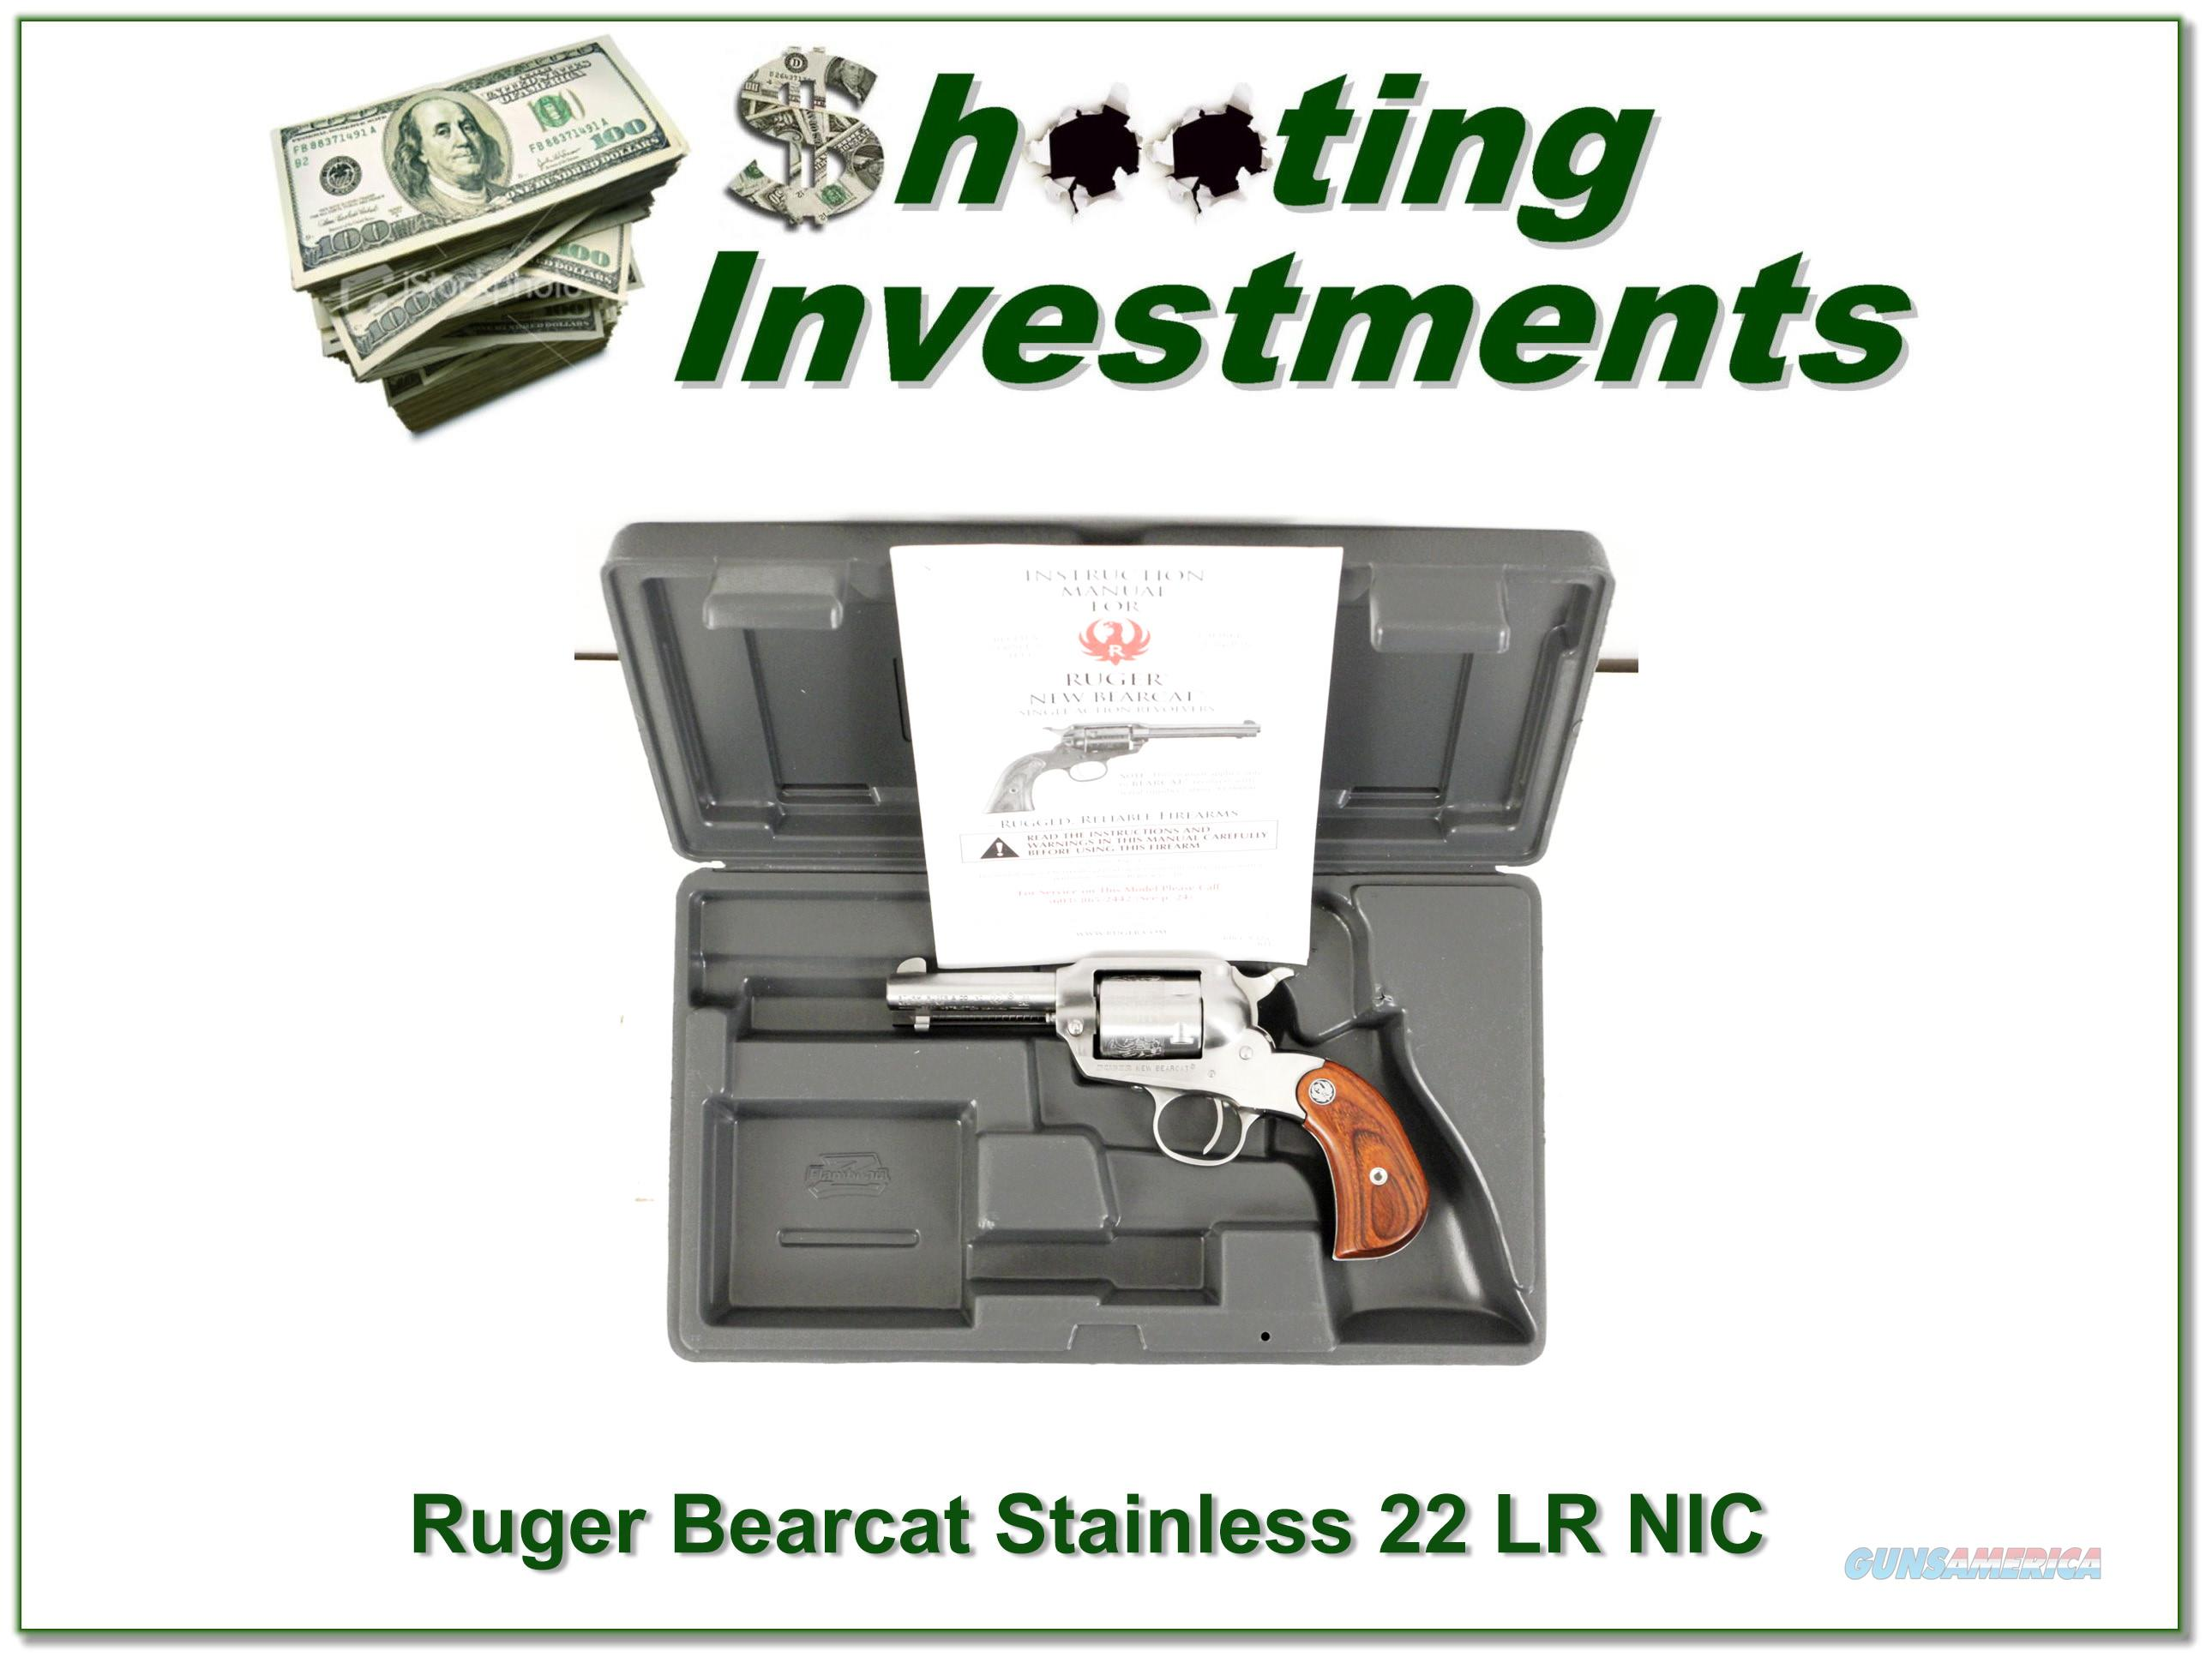 Ruger Bearcat 3in Stainless 22 Engraved NIC!  Guns > Pistols > Ruger Single Action Revolvers > Bearcat